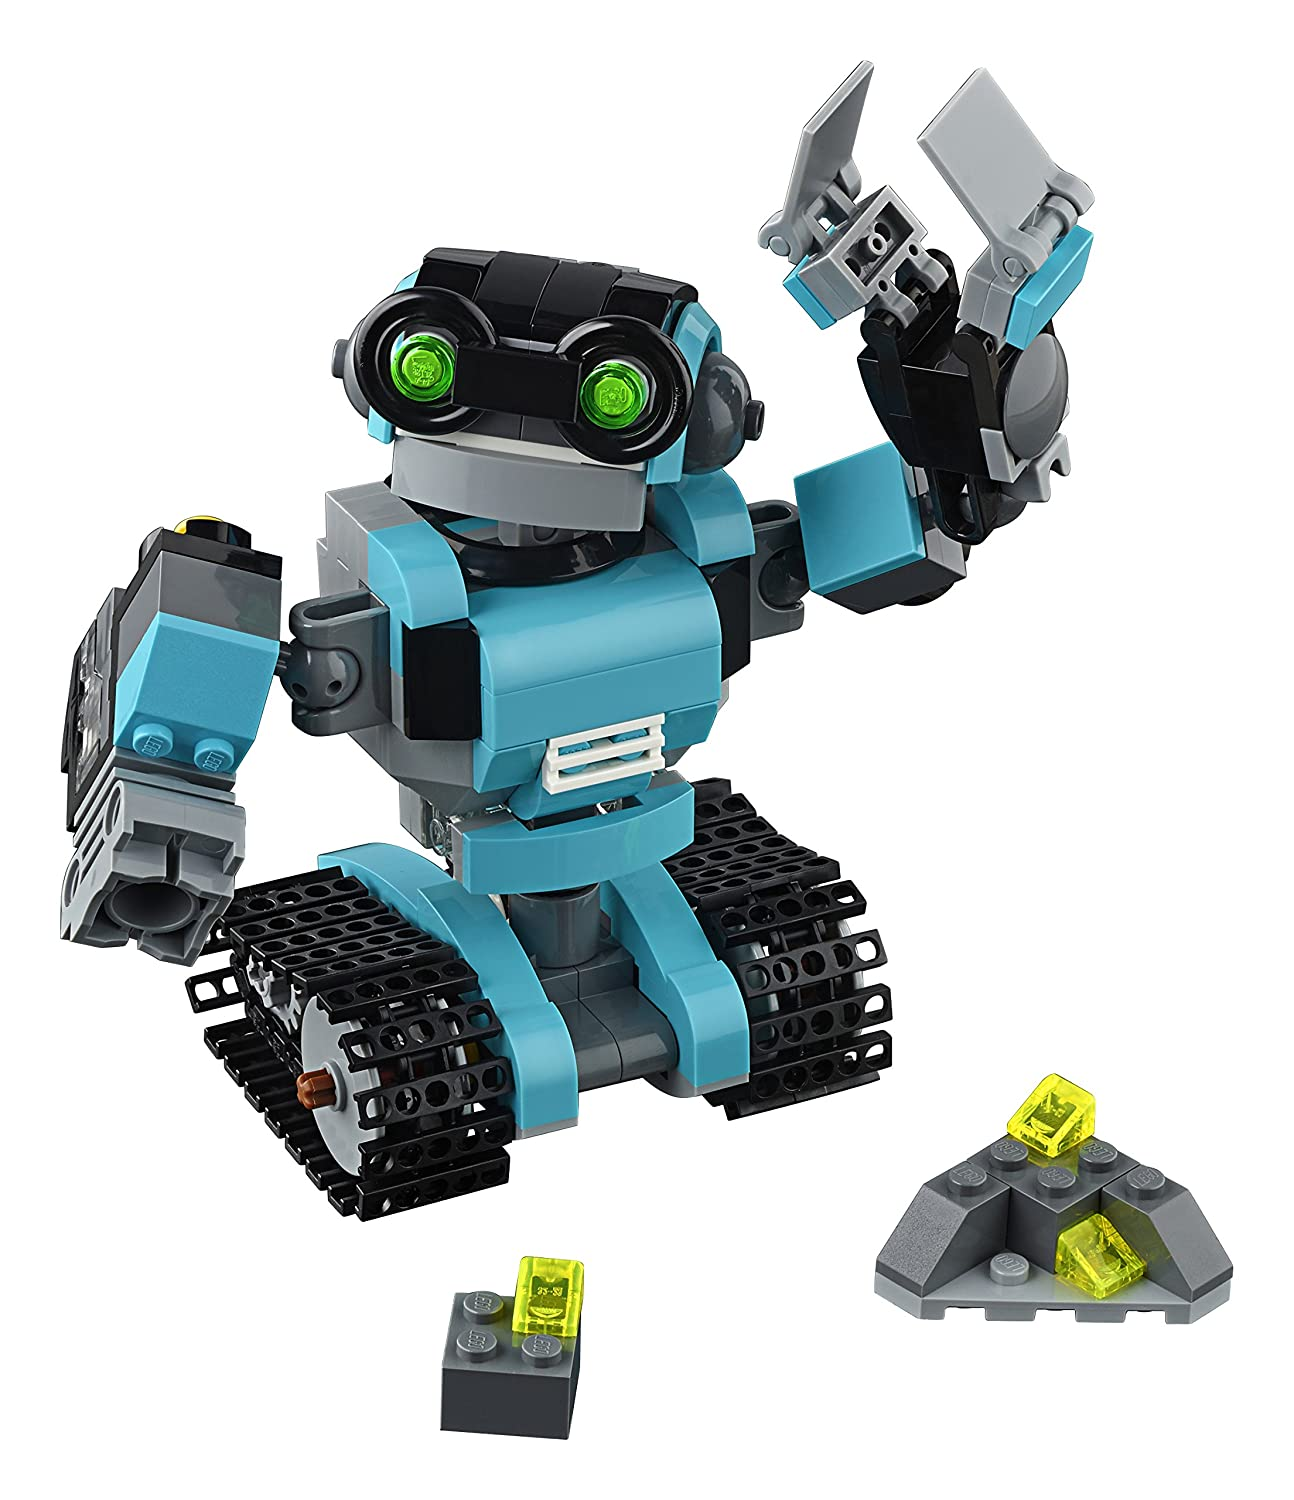 Amazon LEGO Creator Robo Explorer Robot Toy Toys & Games